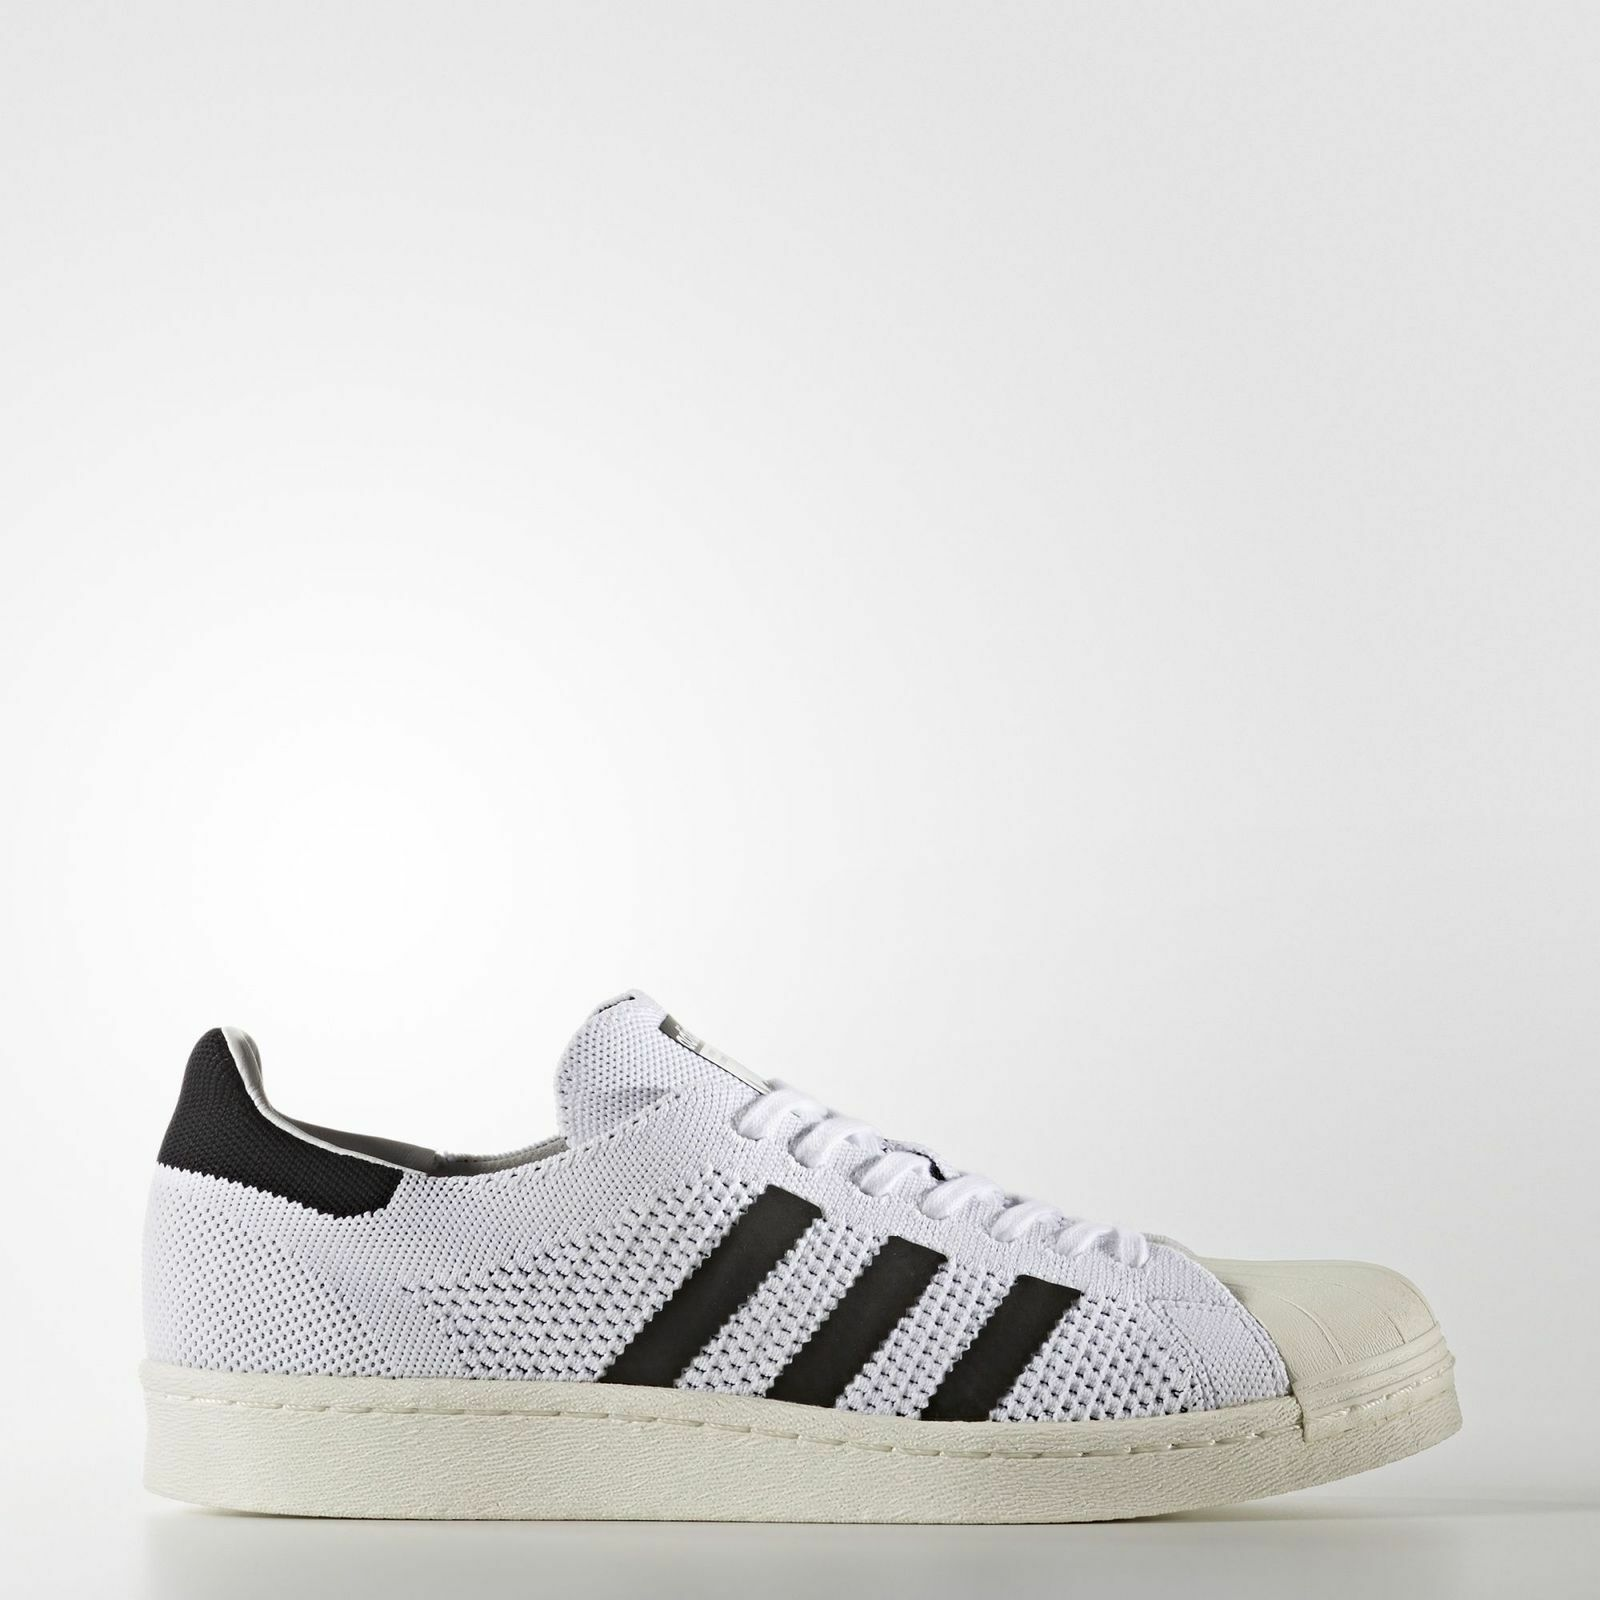 New adidas Originals Superstar Boost Shoes BB0190 Men's White Sneakers best-selling model of the brand